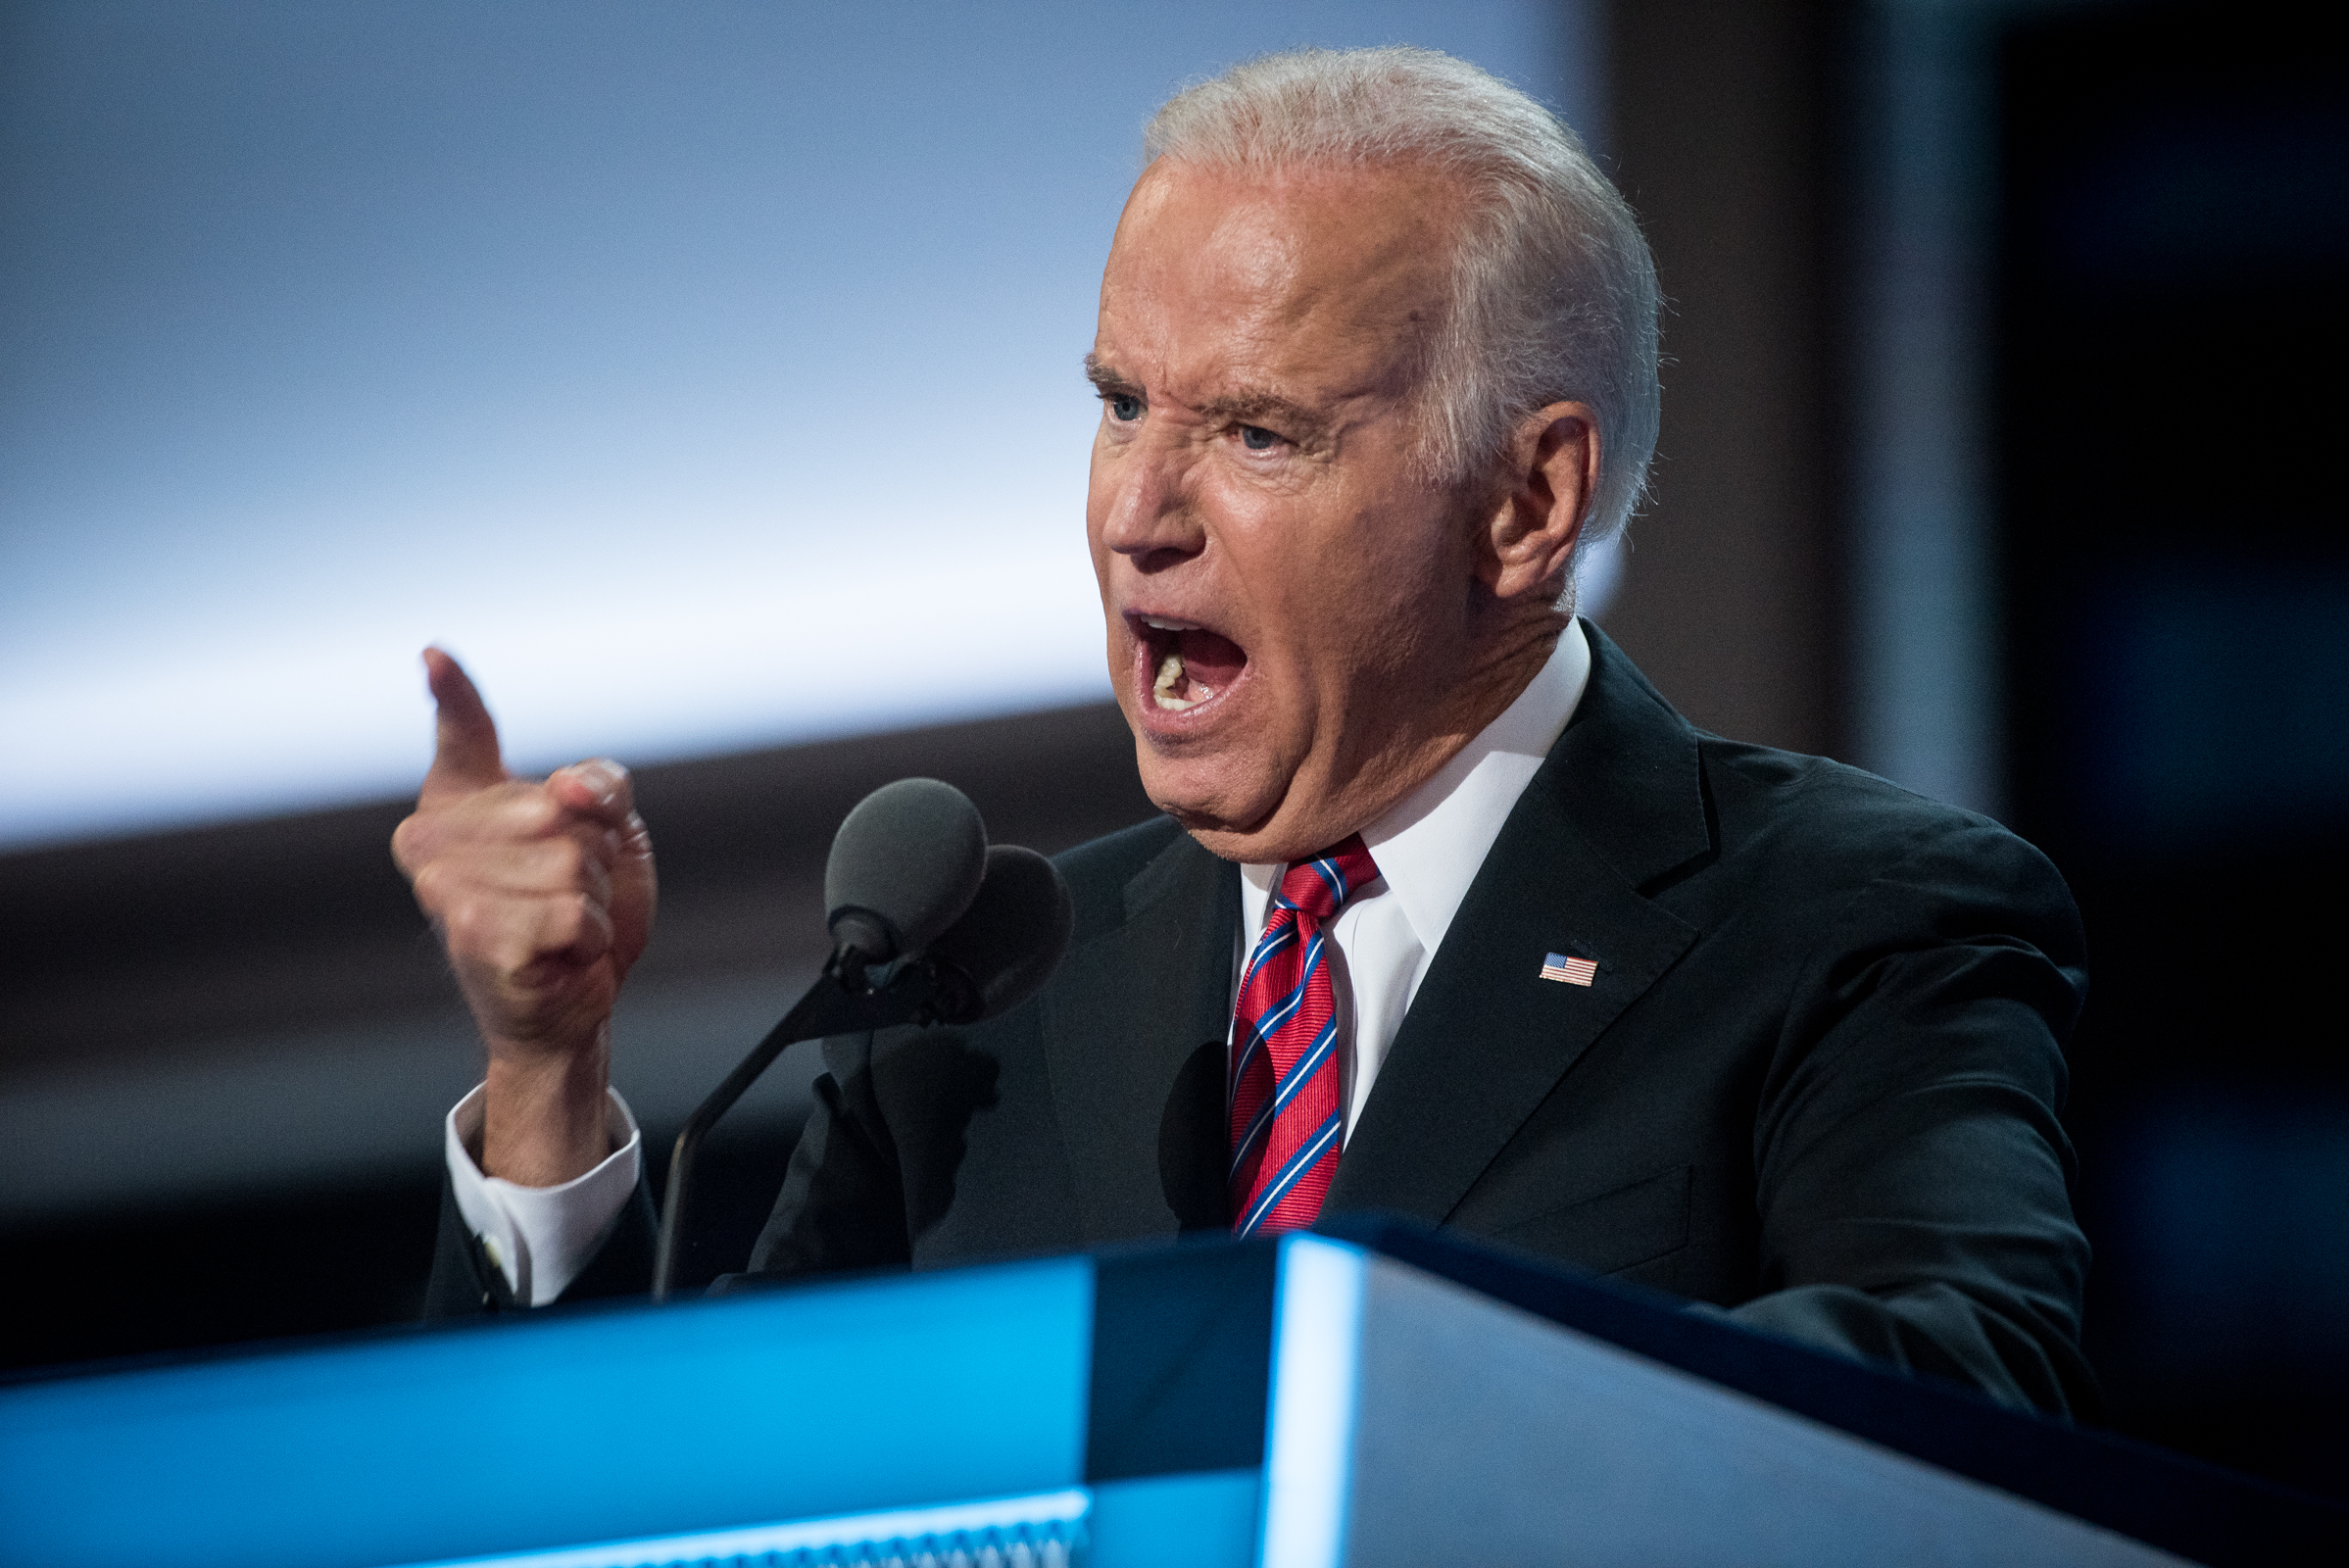 Vice President Joe Biden addresses the delegates at the Democratic National Convention inside the Wells Fargo Center in Philadelphia on Wednesday July 27, 2016. (Michael Ares /Philadelphia Inquirer)